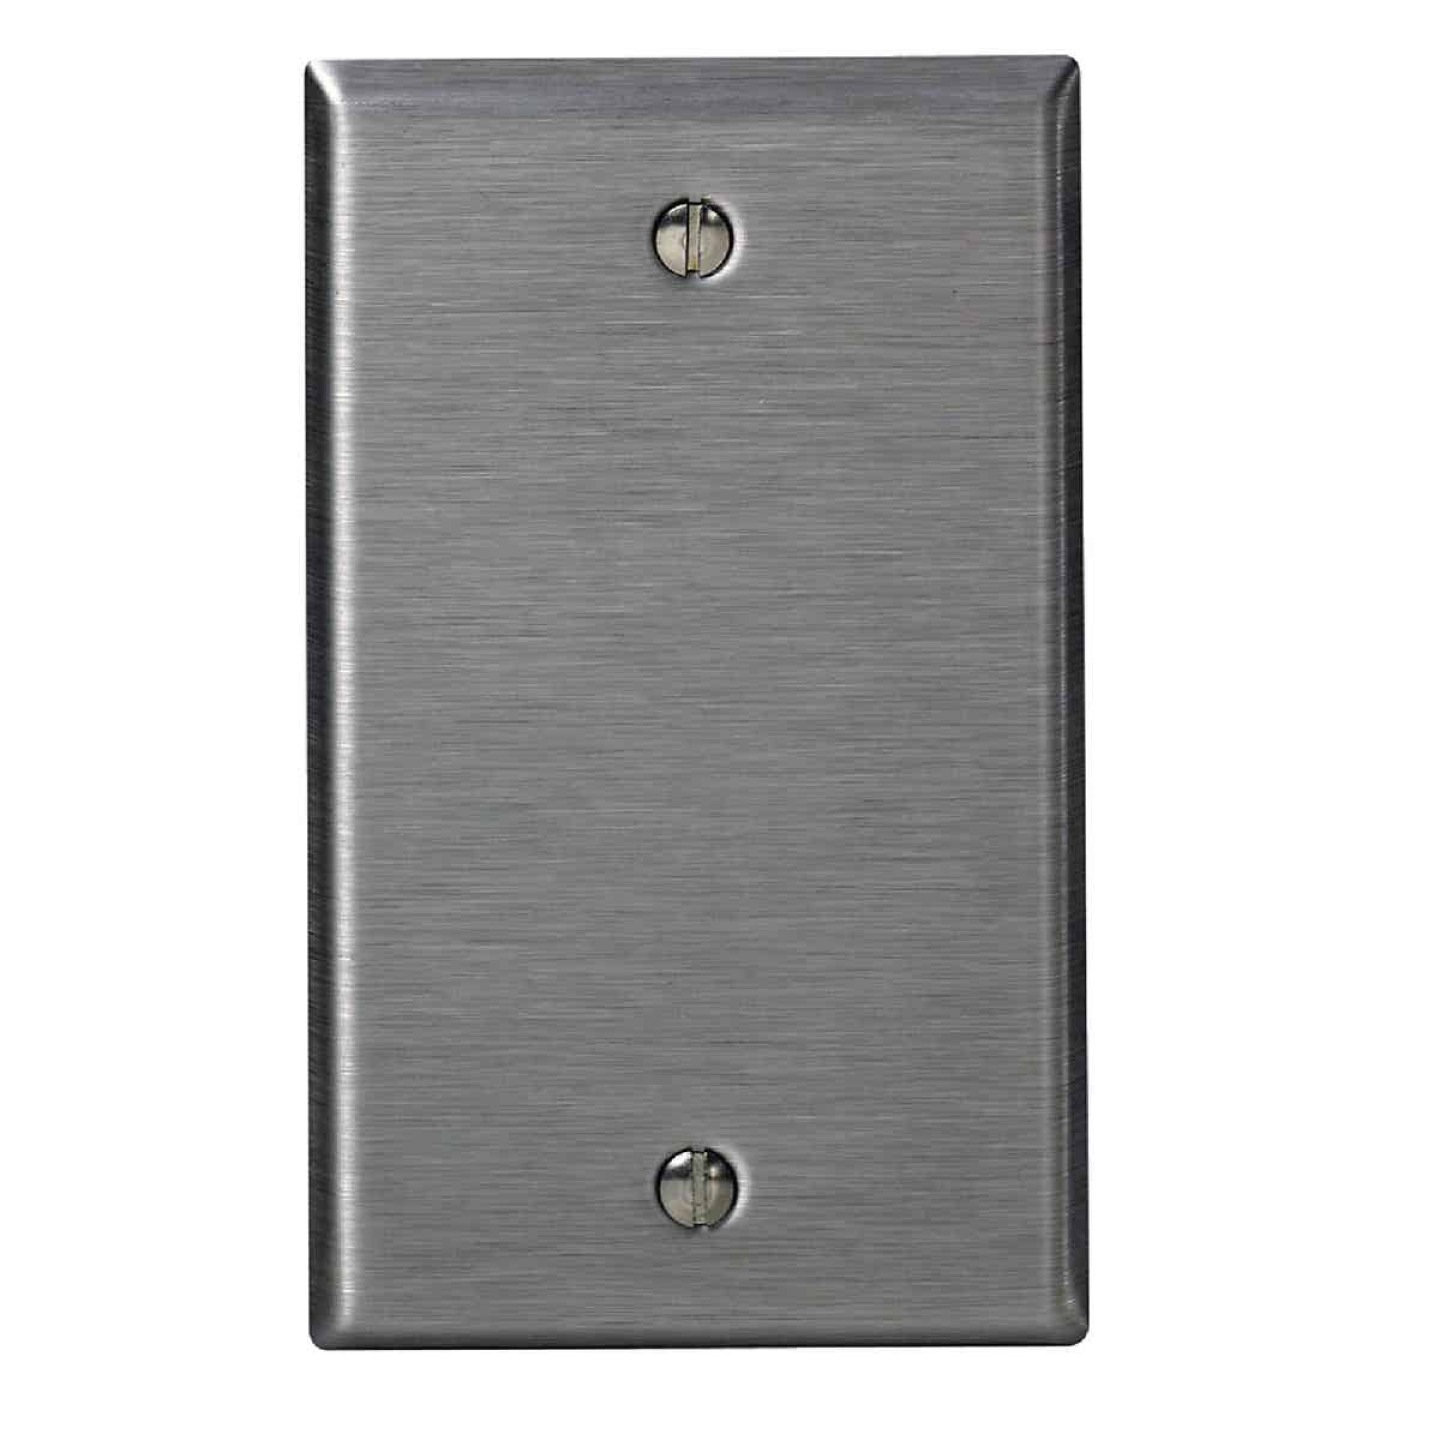 Leviton 1-Gang Standard Stainless Steel Blank Wall Plate  Image 1